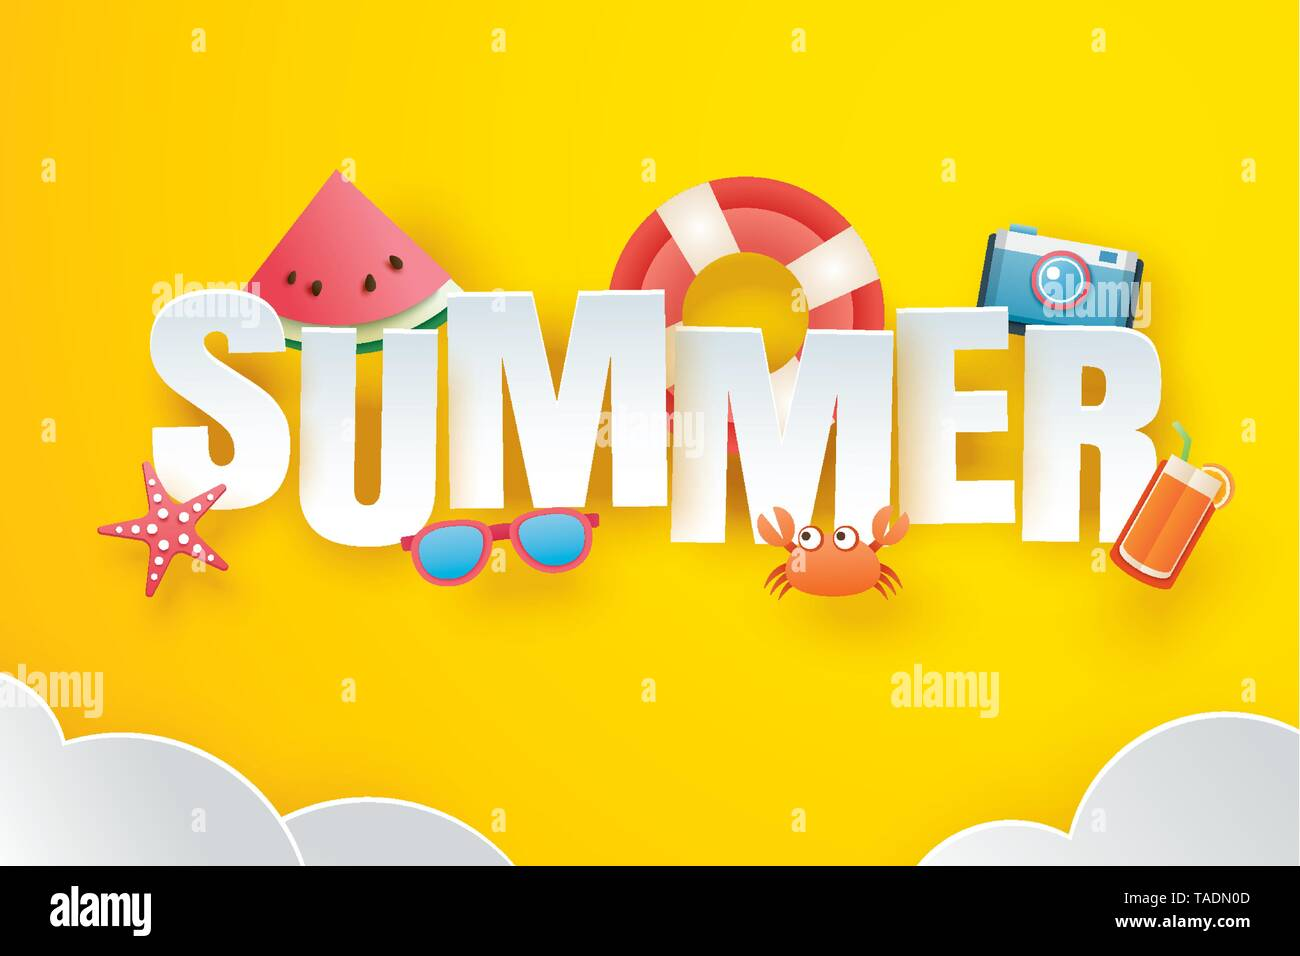 Hello summer with decoration origami on the sky yellow background. Paper art and craft style. Vector illustration of life ring, camera, watermelon, su - Stock Image